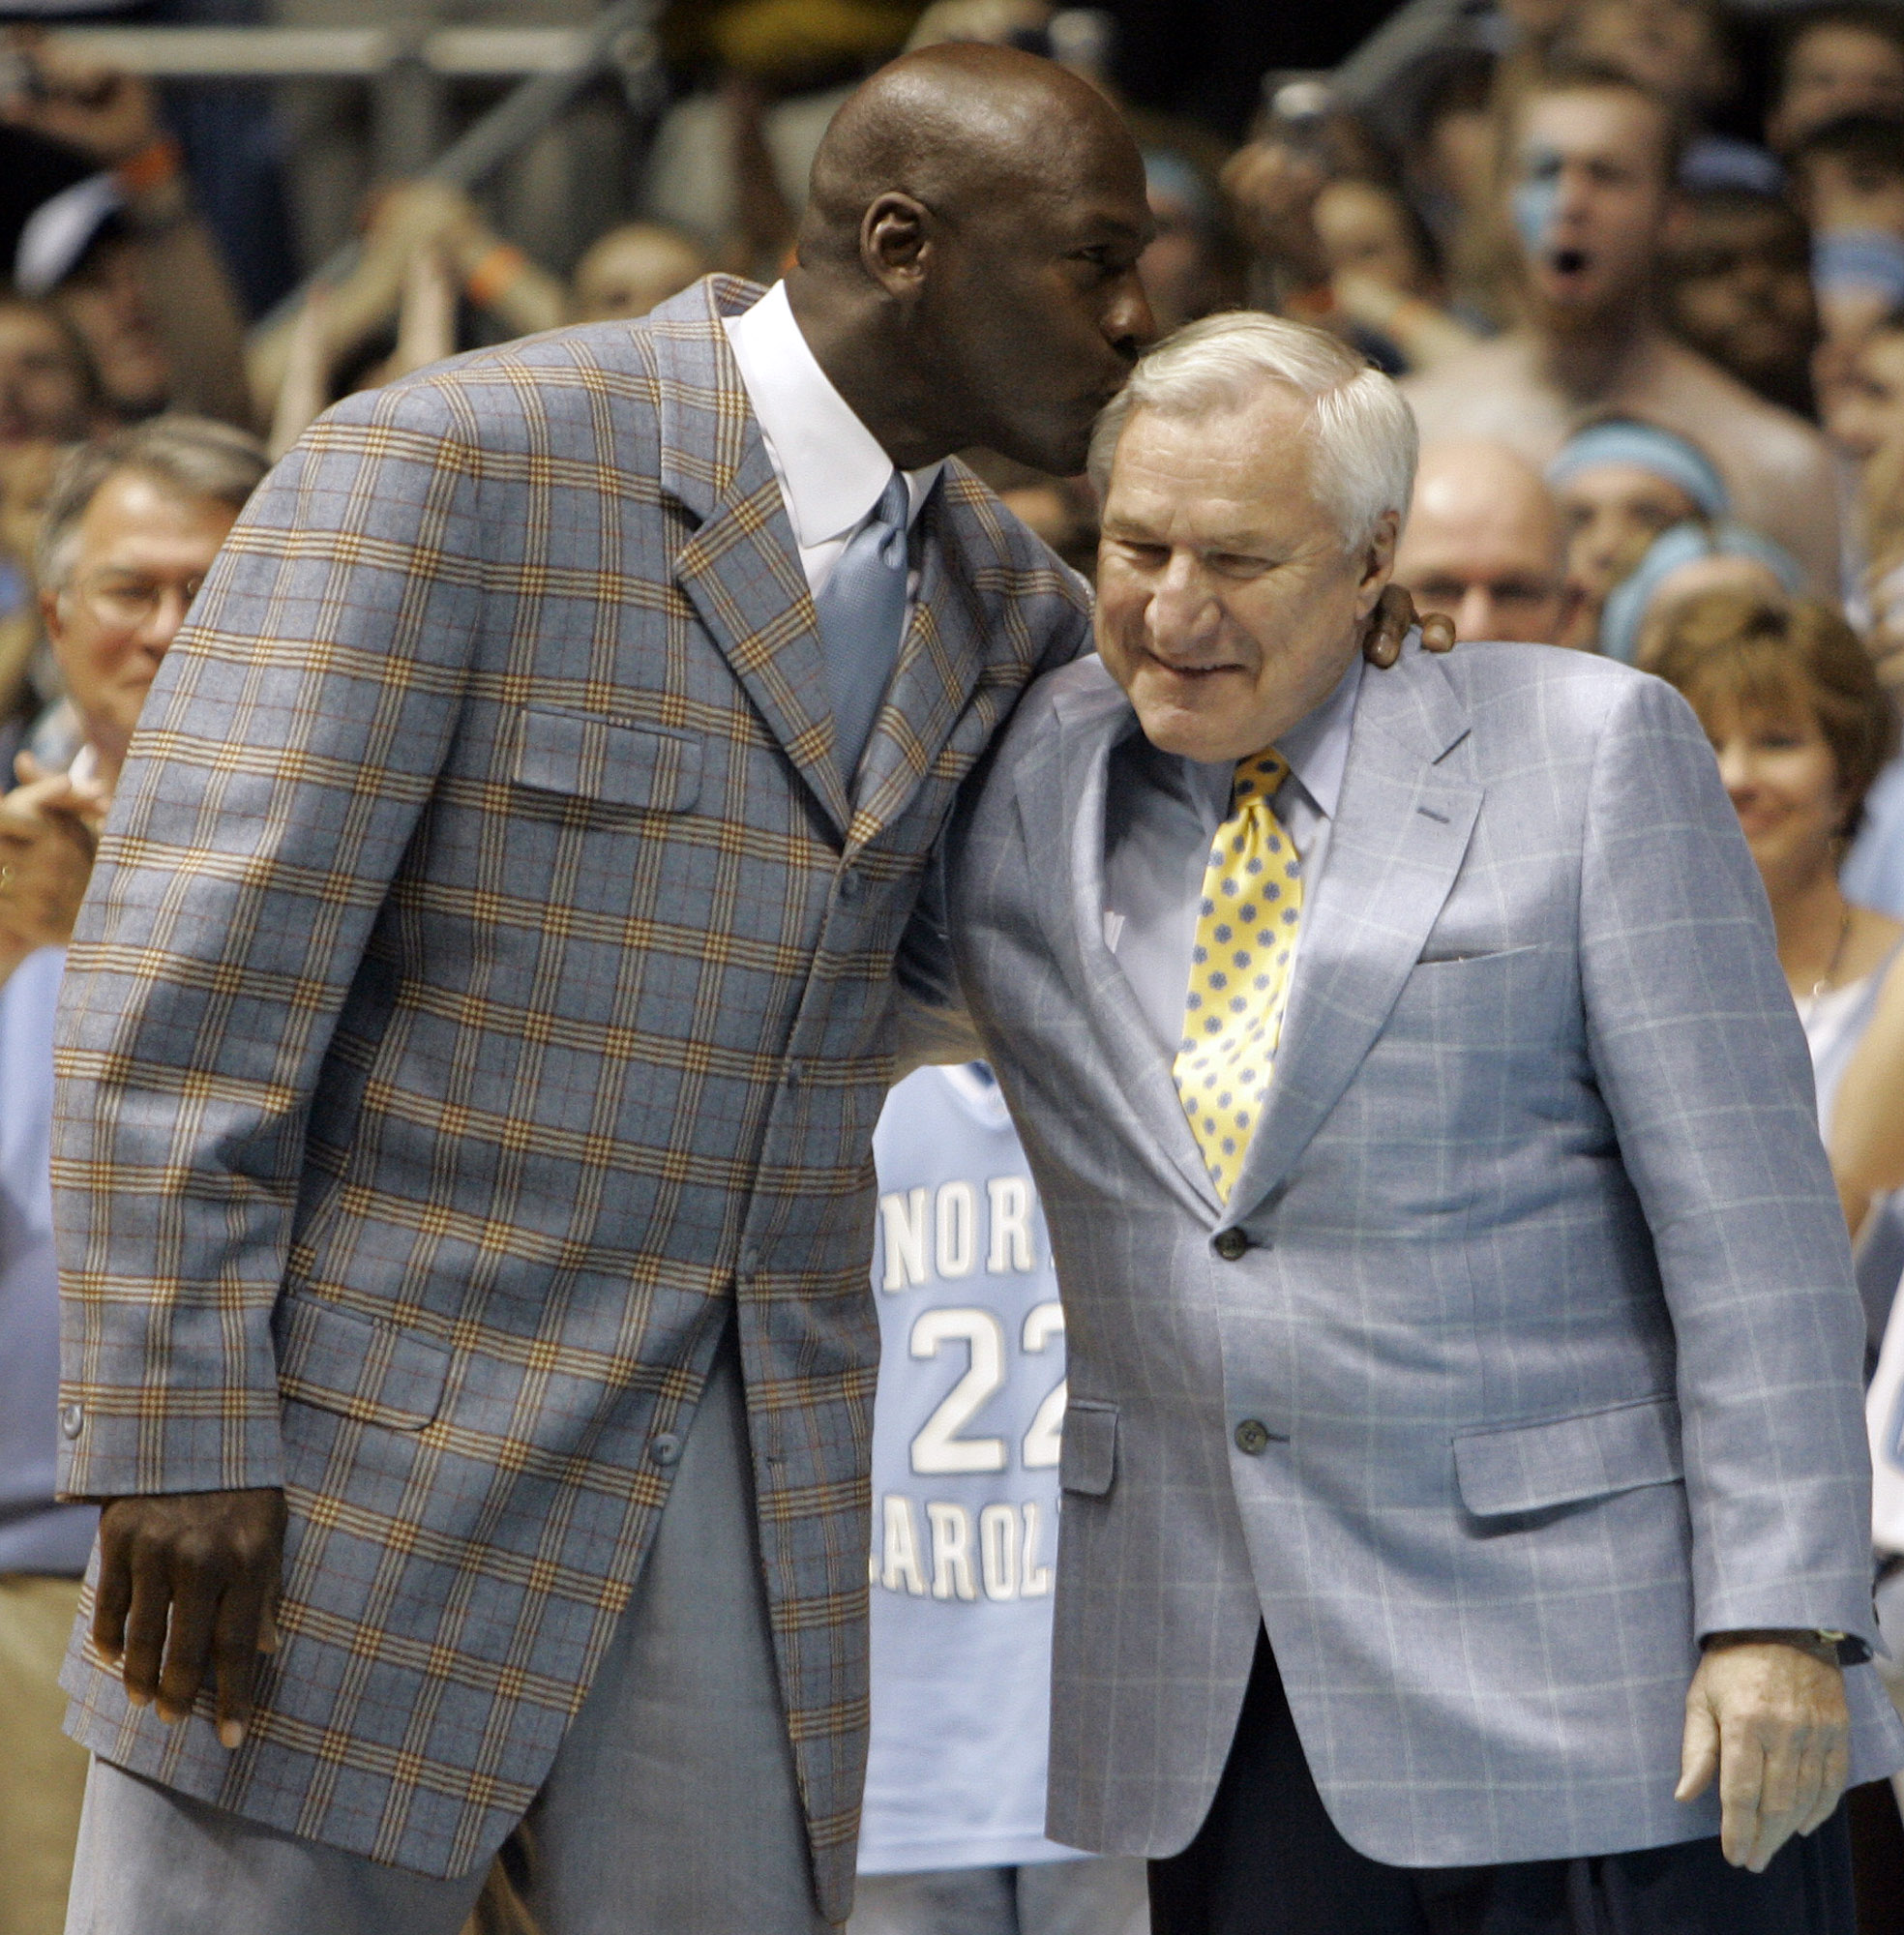 File-This Feb. 10, 2007, file photo shows former North Carolina player Michael Jordan, left, giving his former coach Dean Smith a kiss during halftime of a college basketball game between North Carolina and Wake Forest in Chapel Hill, N.C. ``It's a whole new world,'' said Steve Fisher, the 70-year-old San Diego State coach who made his name leading Michigan's Fab Five to the Final Four in the '90s. ``With Dean and Tark, and I'll throw my group in there, no one ever got into it thinking, `I'm going to get rich being in this profession.' Today, a lot of people get rich as a result of being in this profession. Everything about that isn't totally healthy.''  (AP Photo/Gerry Broome, File)